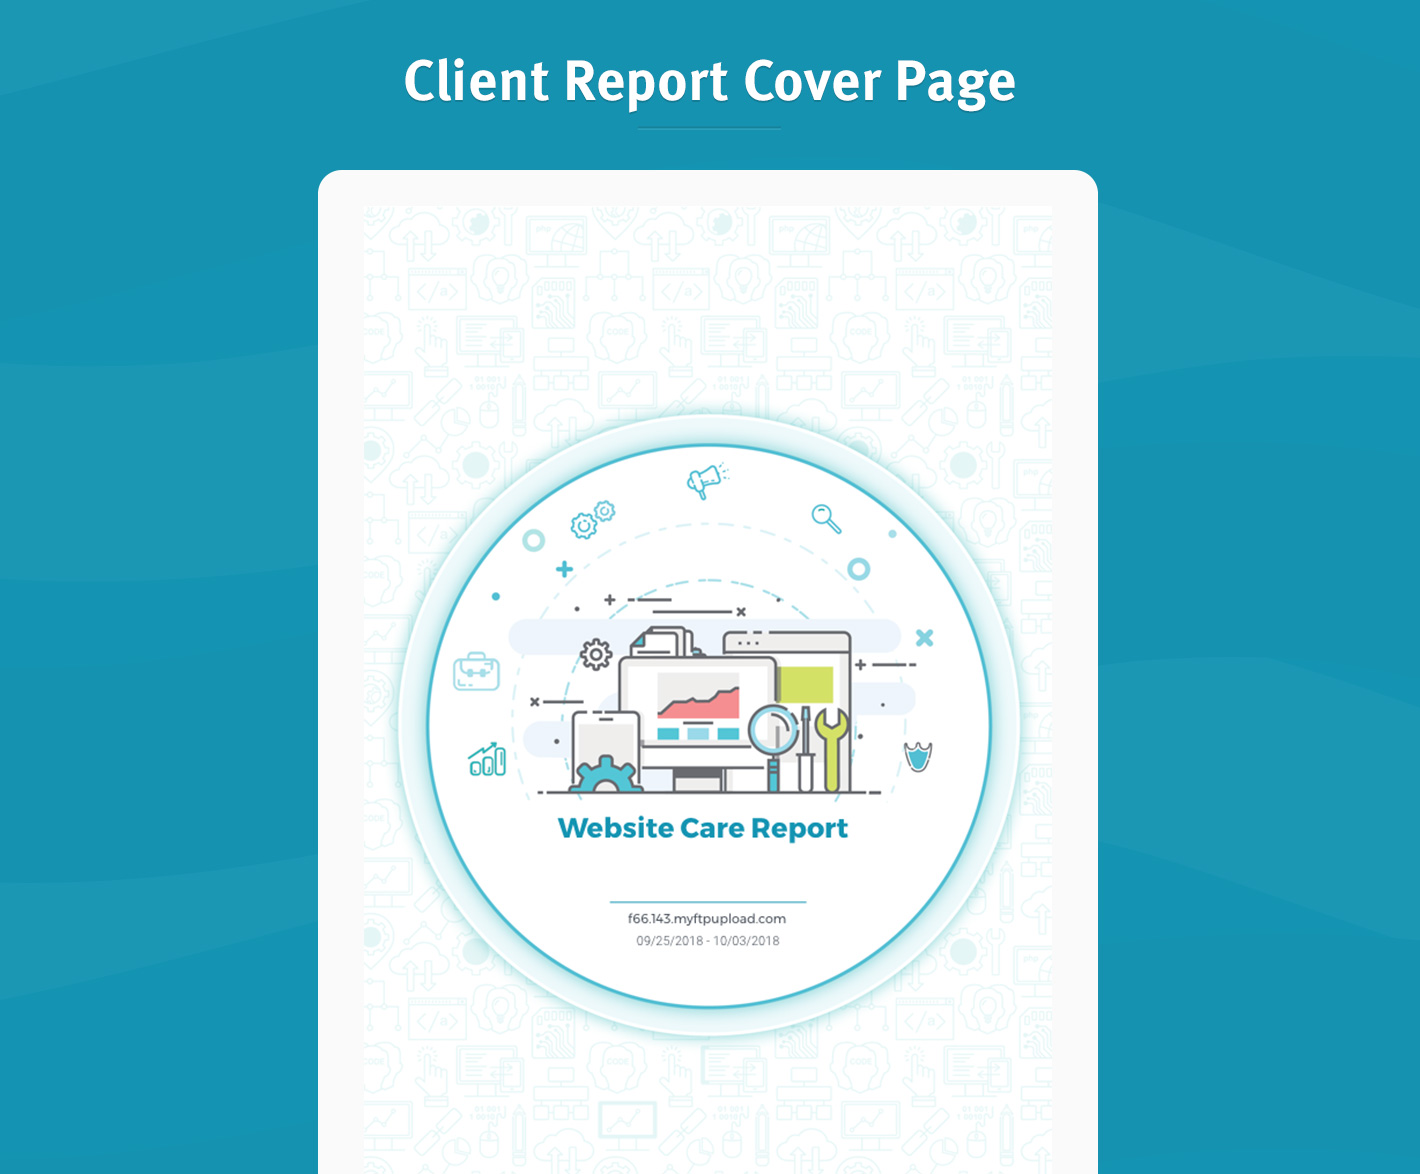 Client Report Cover Page